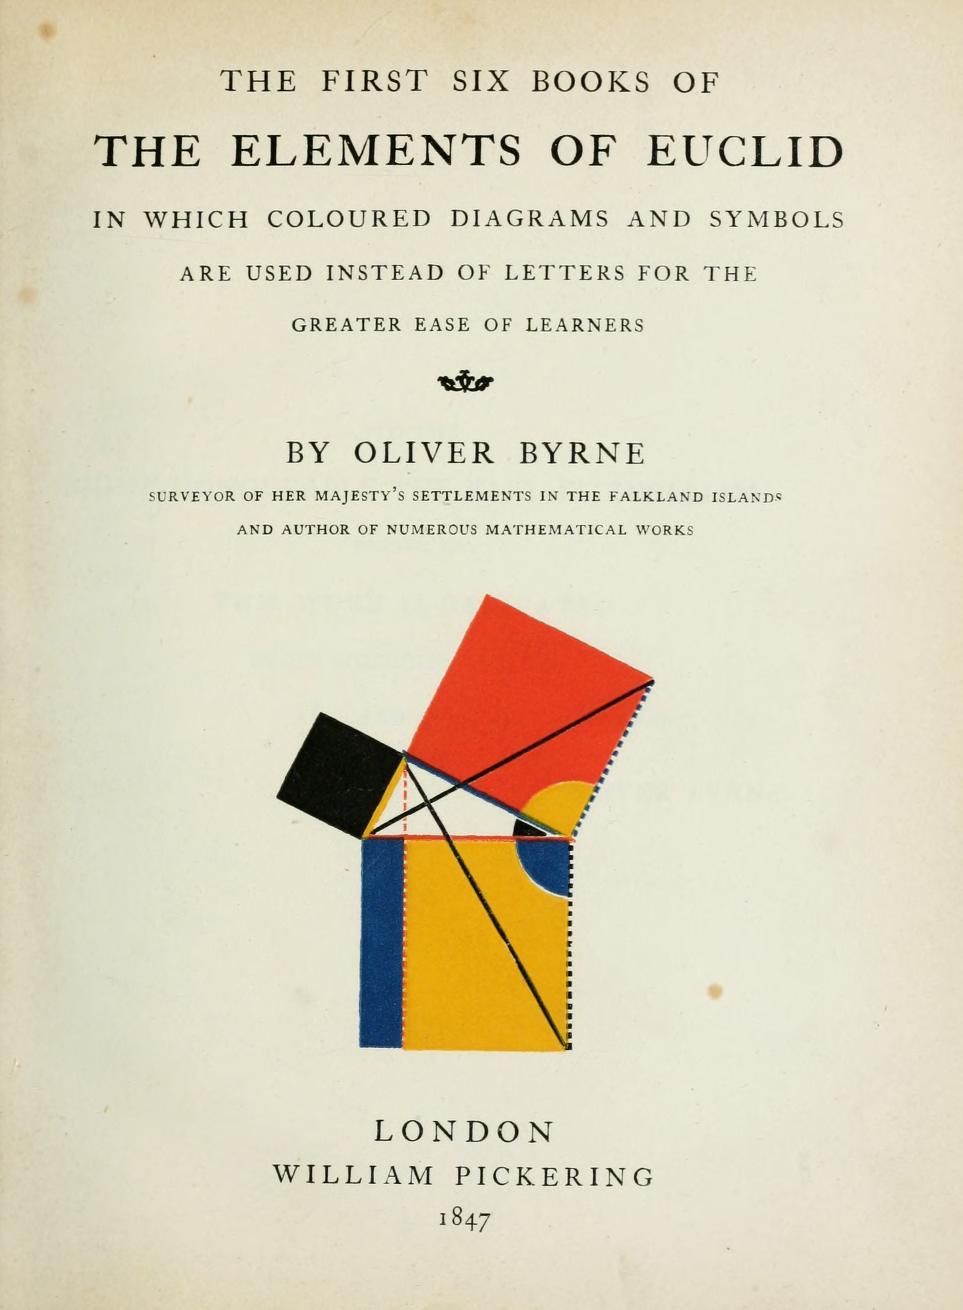 The first six books of the Elements of Euclid, in which